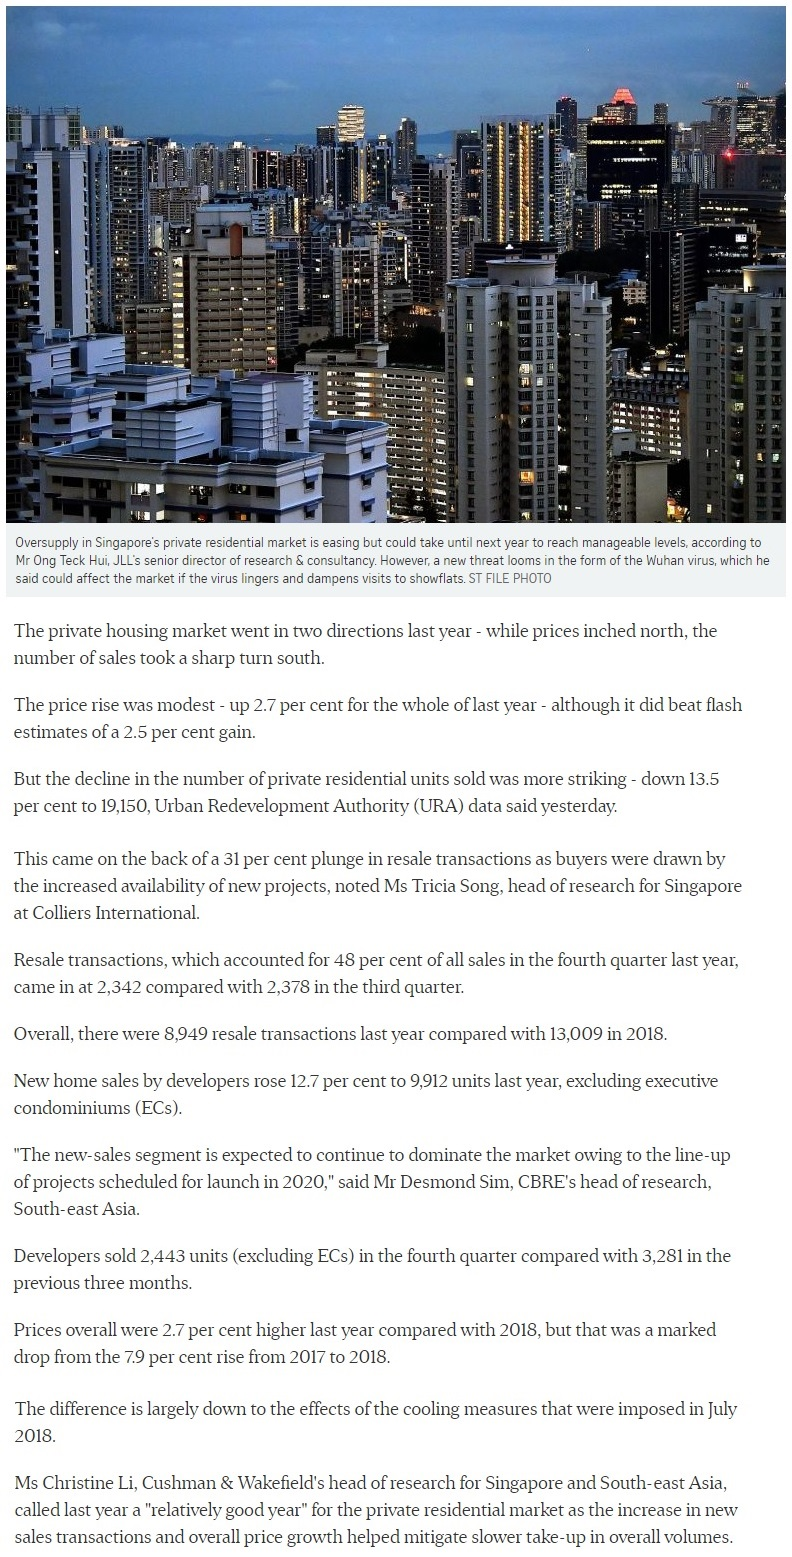 The Gazania - Singapore private home prices inch up 2.7% for 2019 Part 1